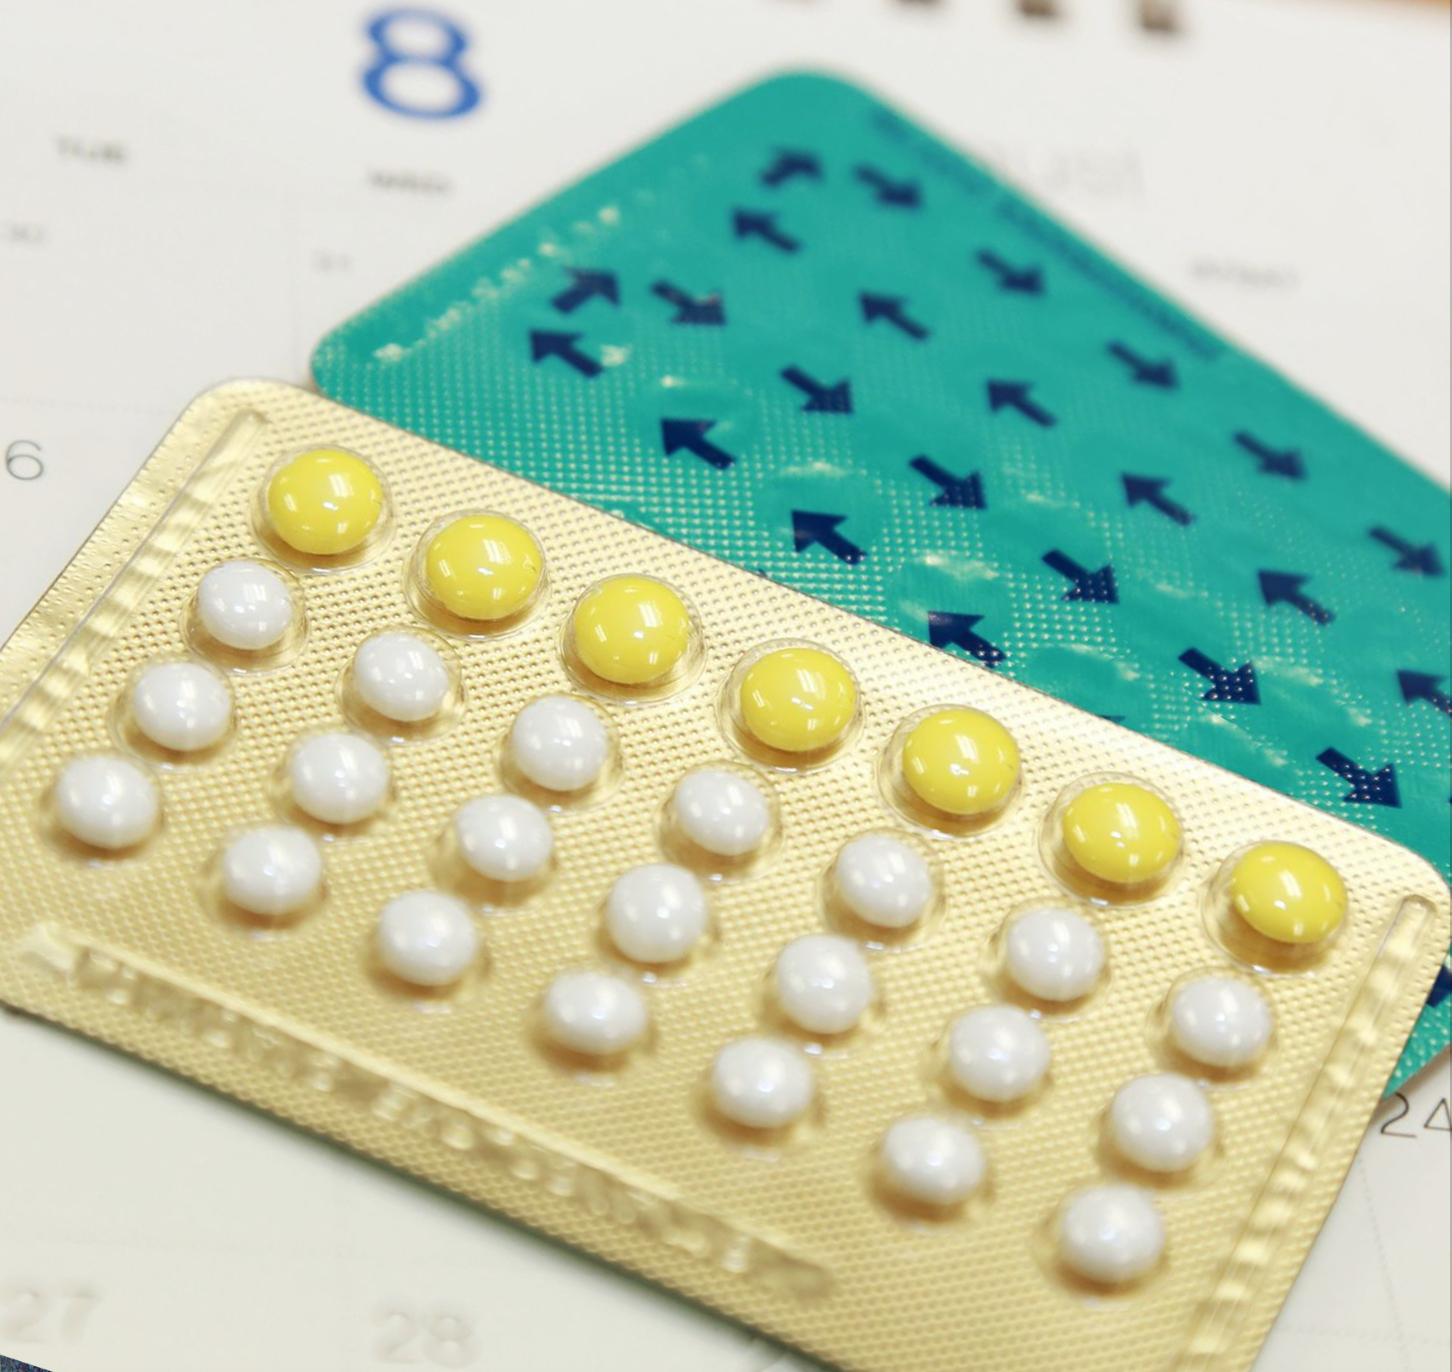 Have you taken the abortion pill (RU486)? - If you have taken the first dose of mifepristone (also known as RU486 or the abortion pill) and regret your decision, it may not be too late to reverse the effects!Call 877.558.0333, a 24/7 hotline, to speak with a medical professional who can direct you to a provider near you.Learn more at AbortionPillReversal.com.